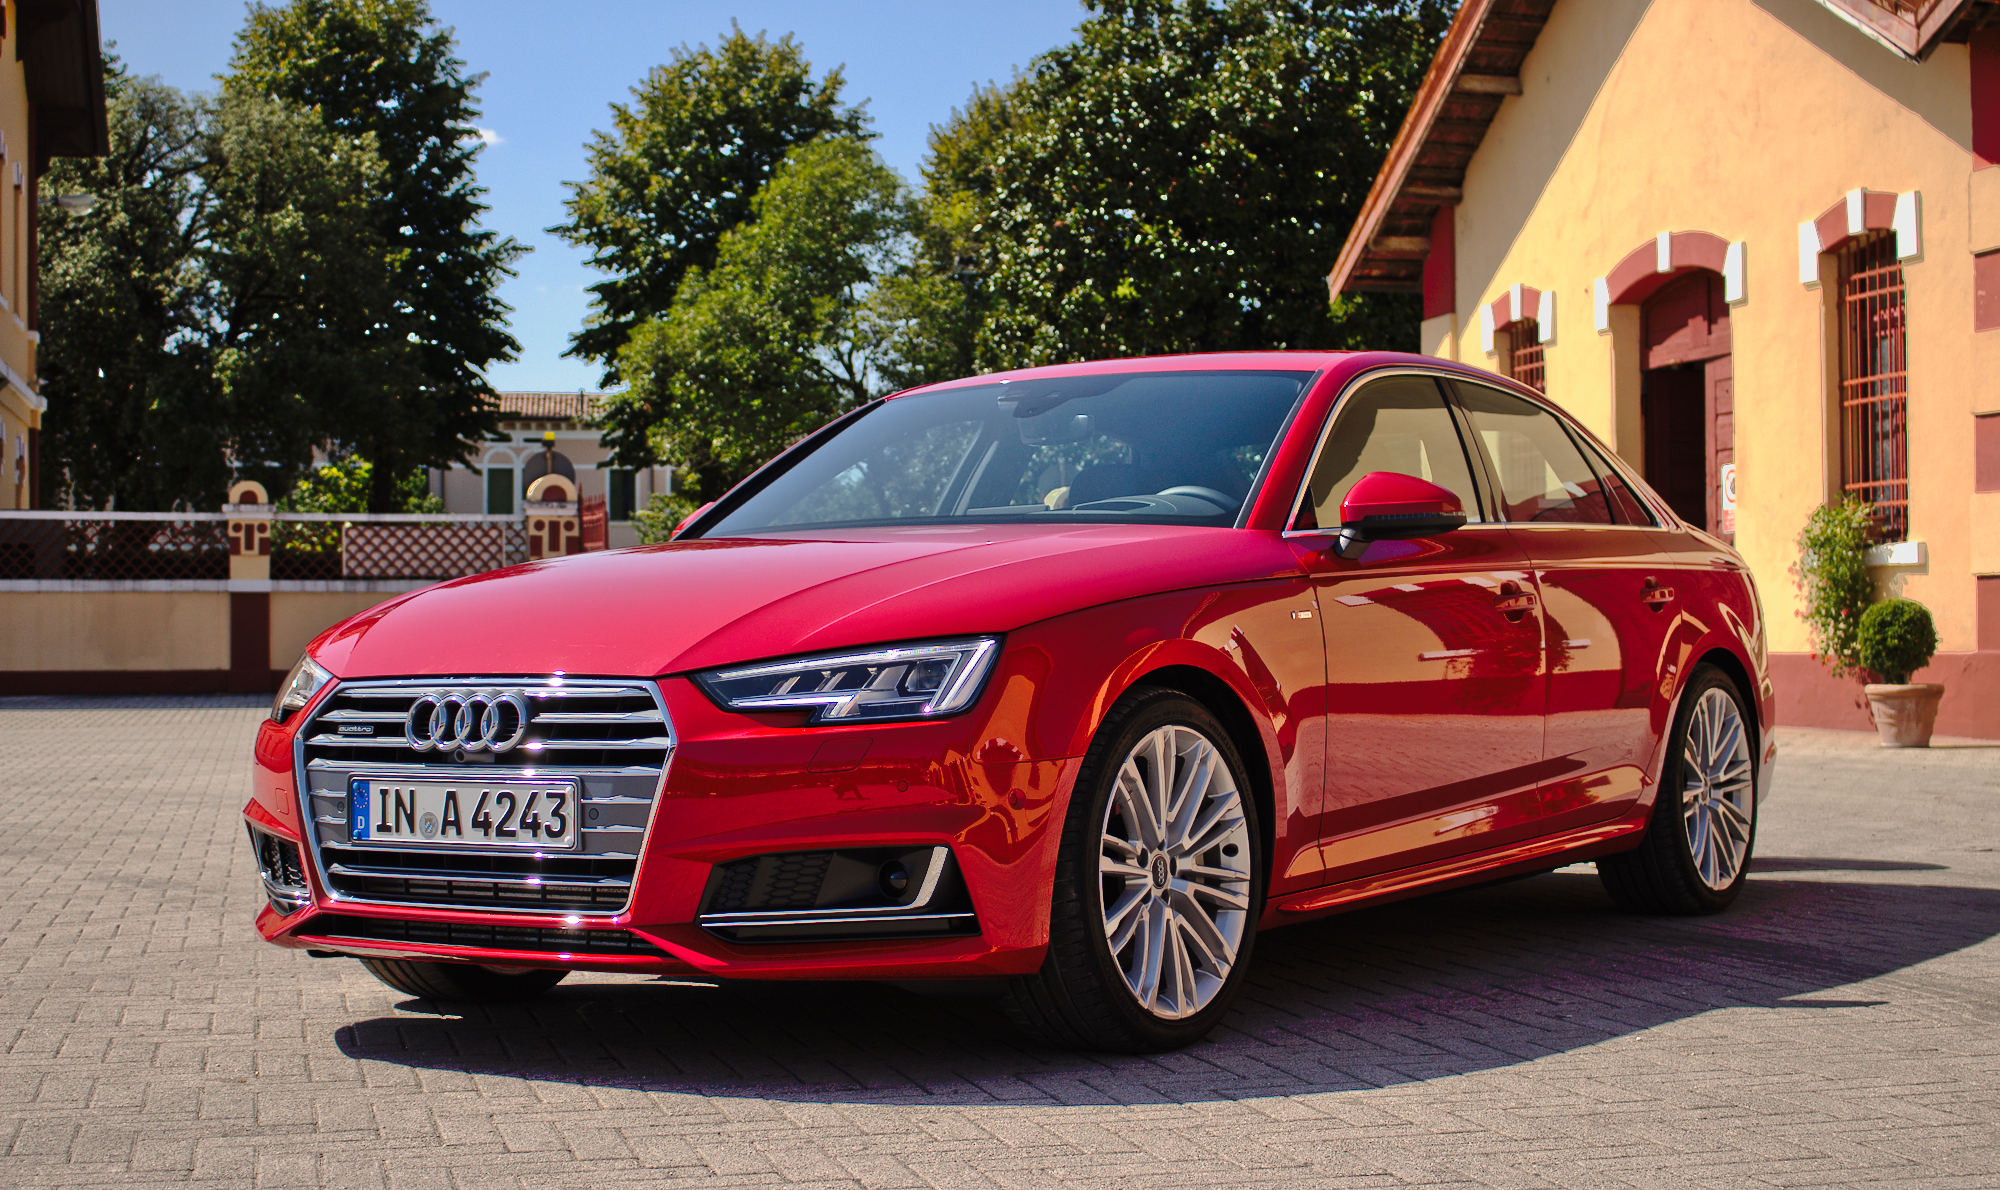 wheels discussion prestige for vs wheel front audi avant caractere owner s forums line quattro of sale platform wagon audiworld w